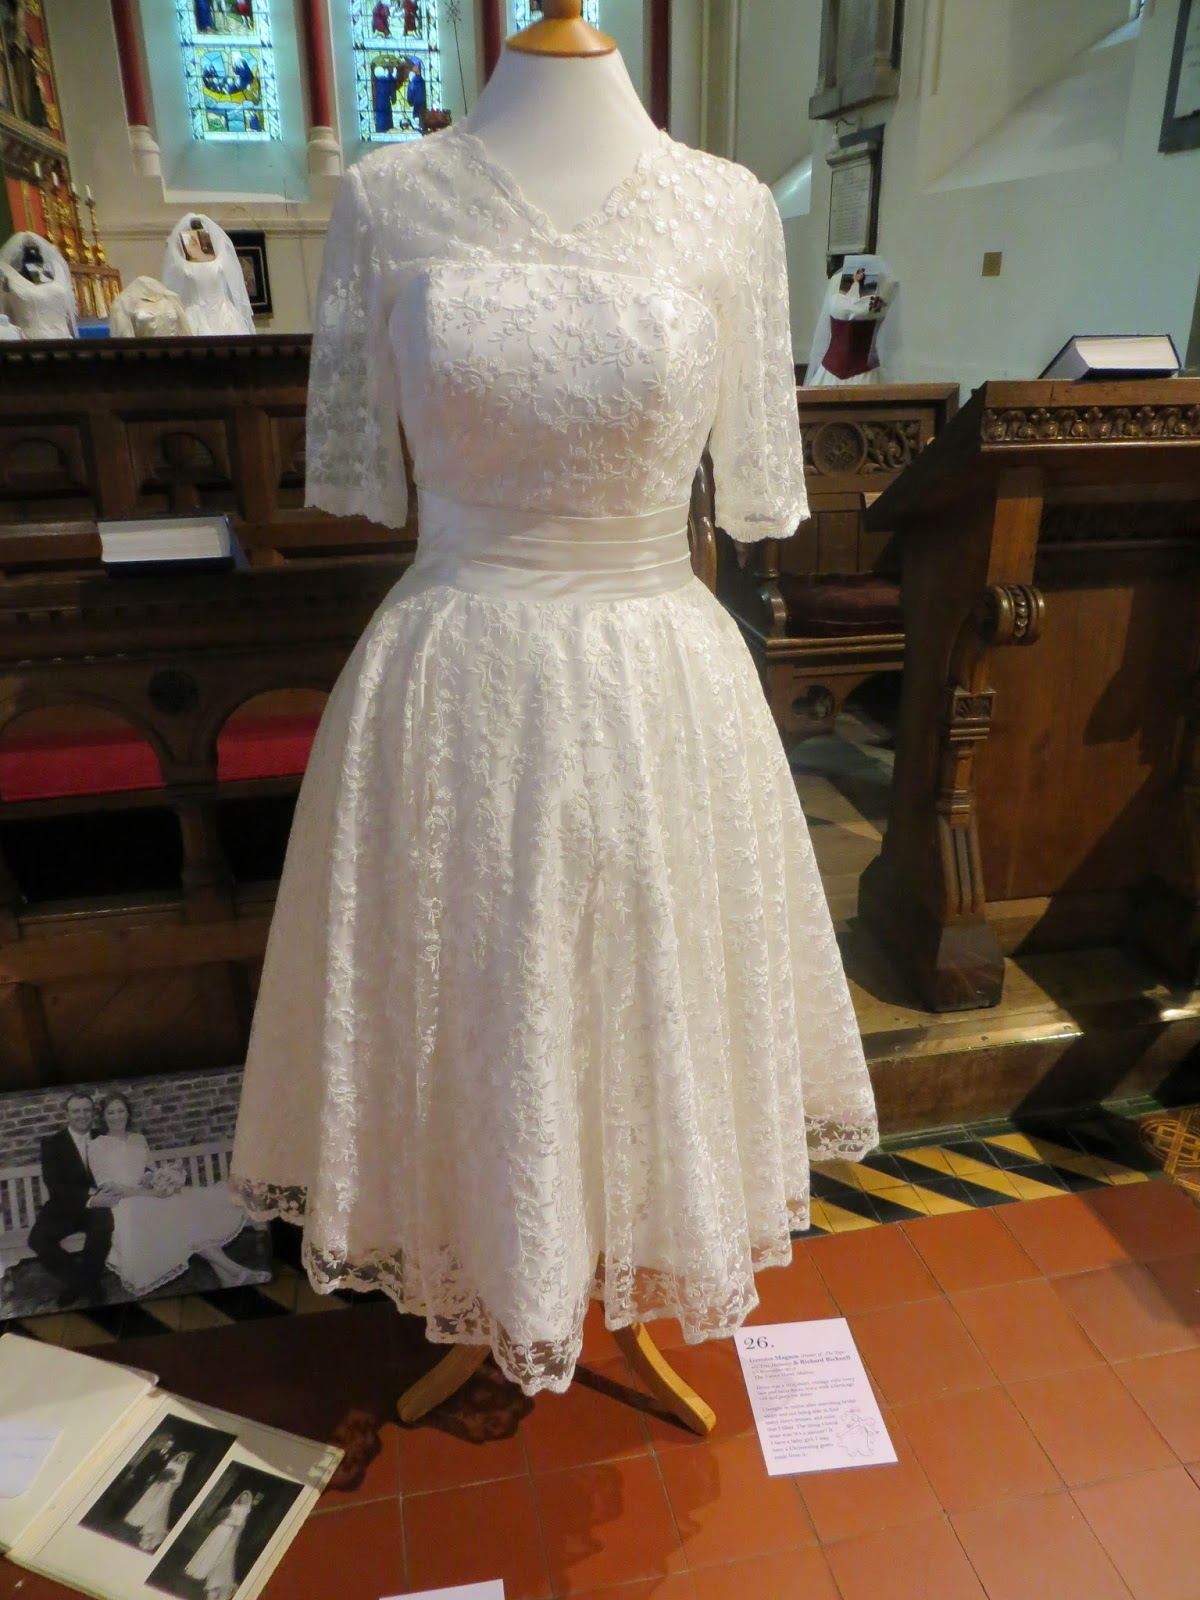 This Is A Beautiful 50s Short Vintage Style Lace And Satin Dress It Was Worn With Birdcage Veil Peep Toe Shoes Belongs To Gemma Bicknall Who